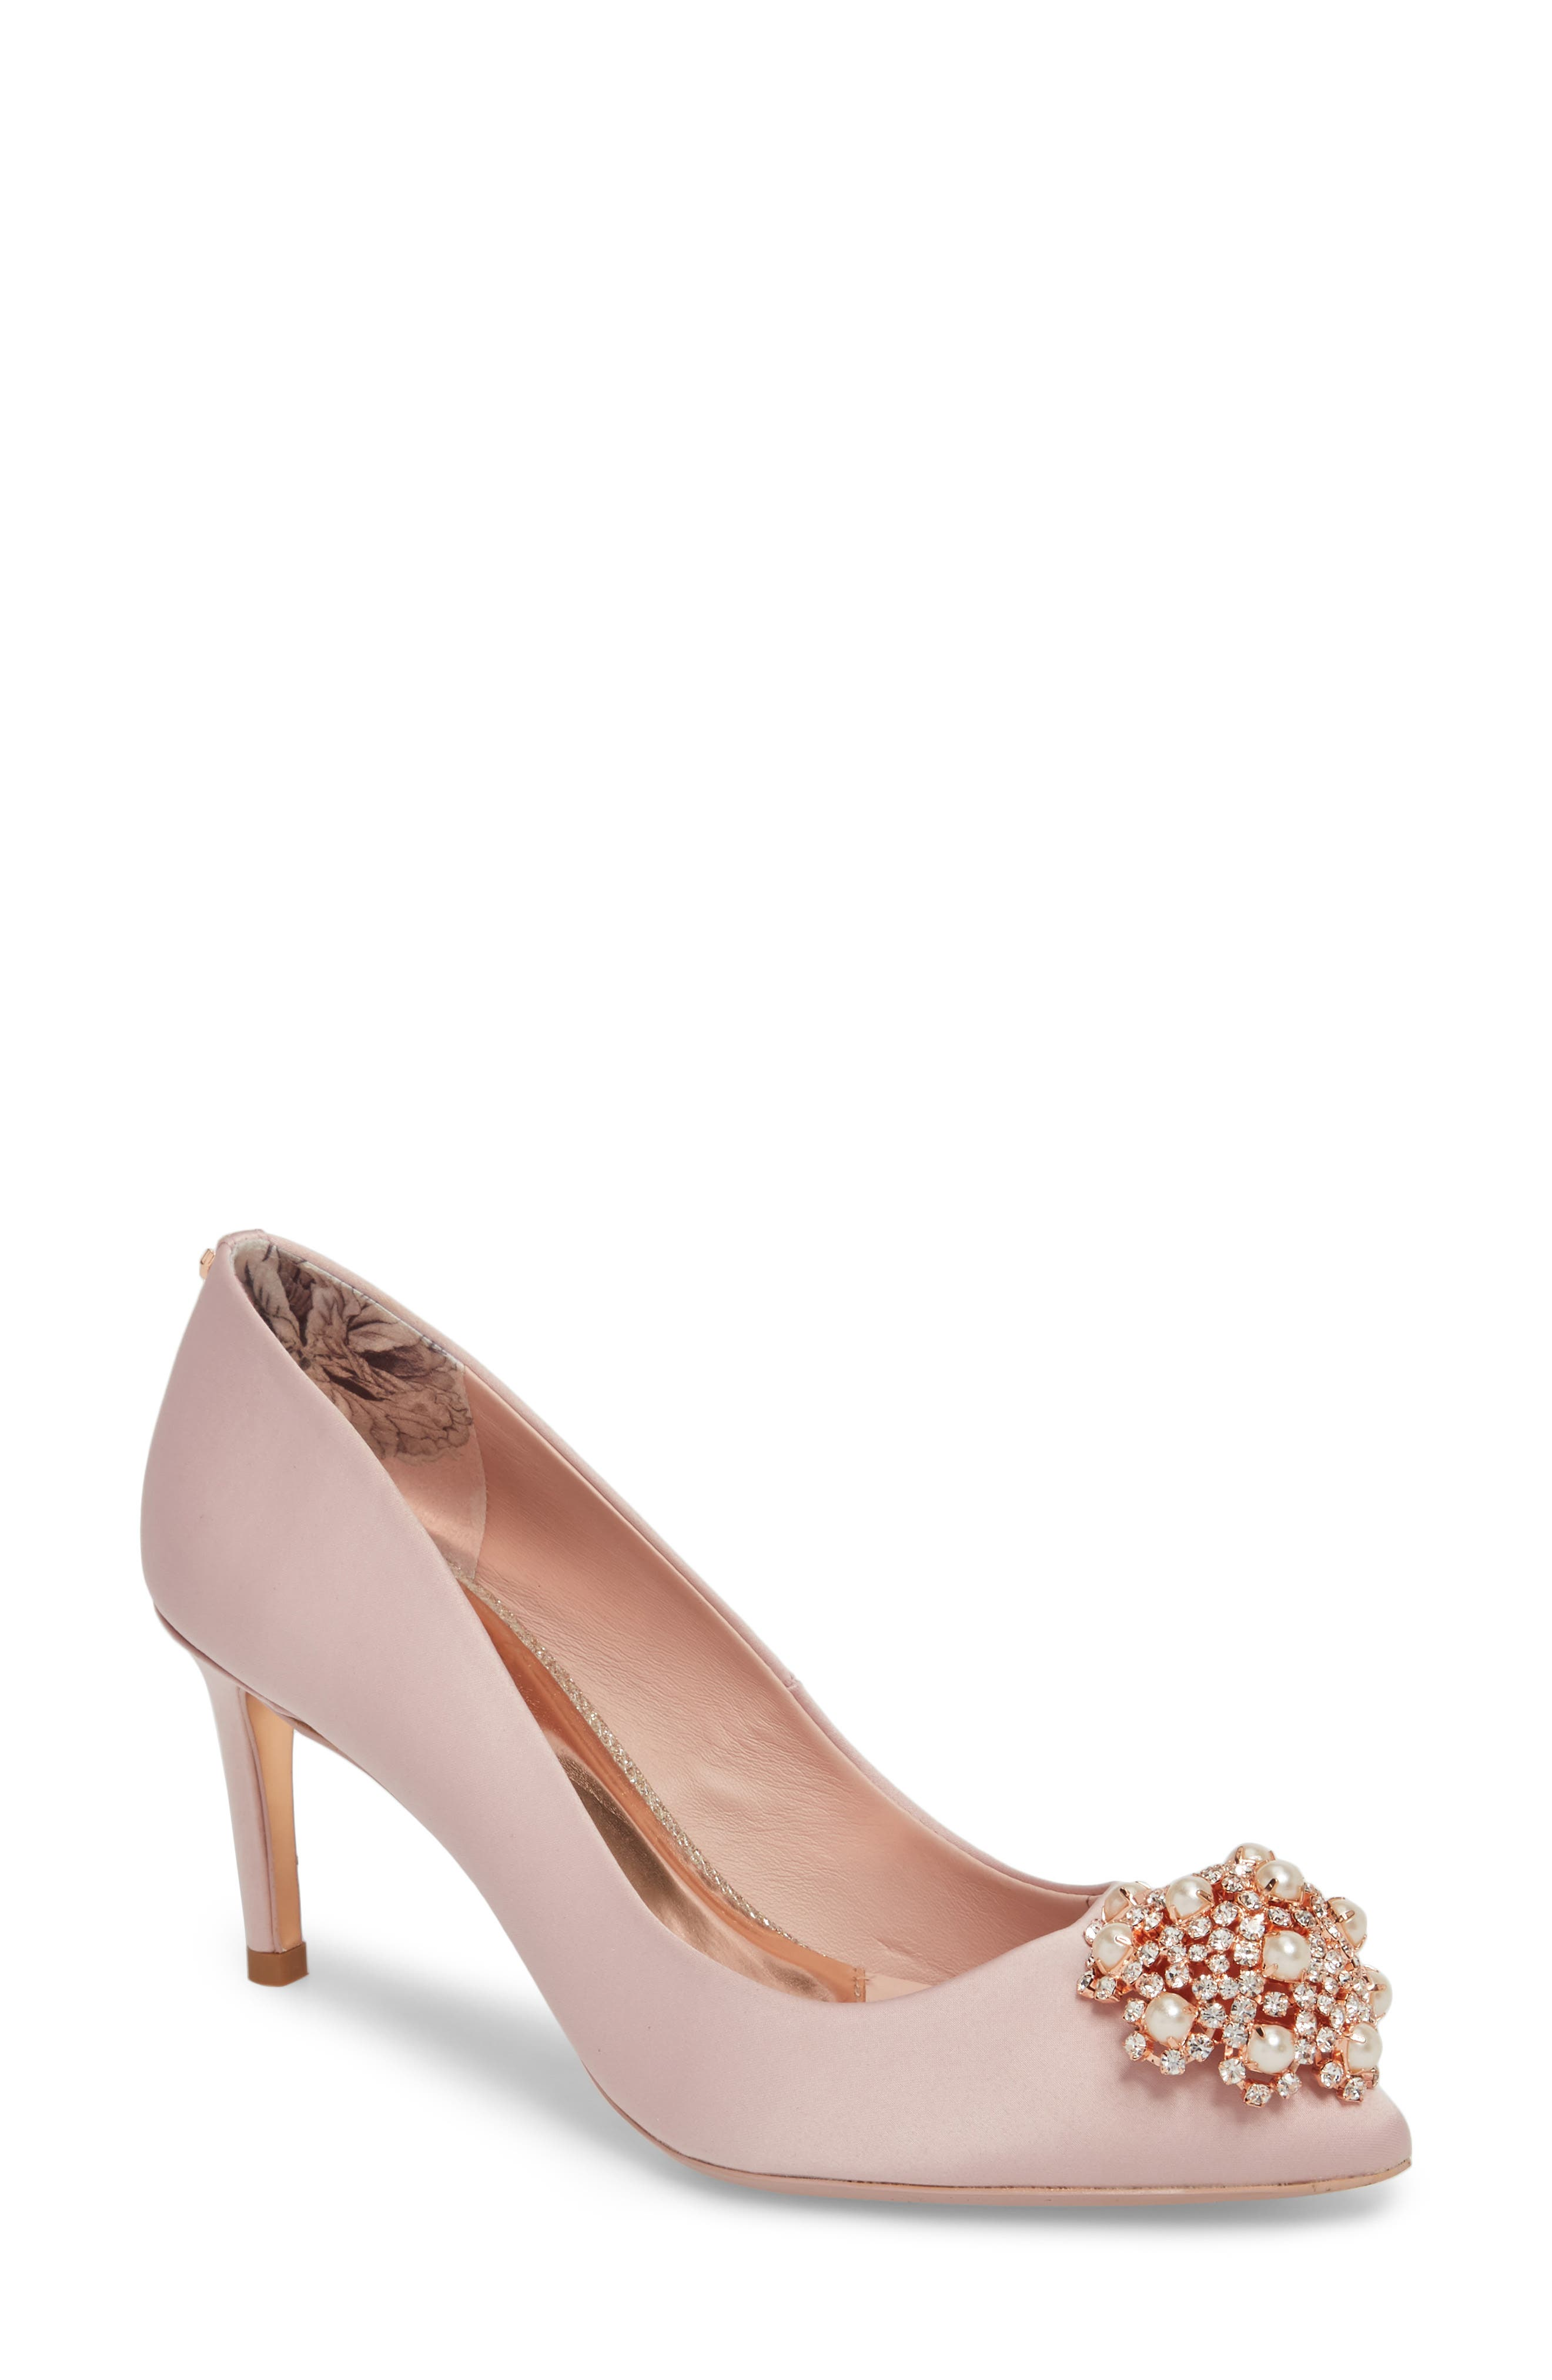 ted baker shoes online australian pharmacy association of americ